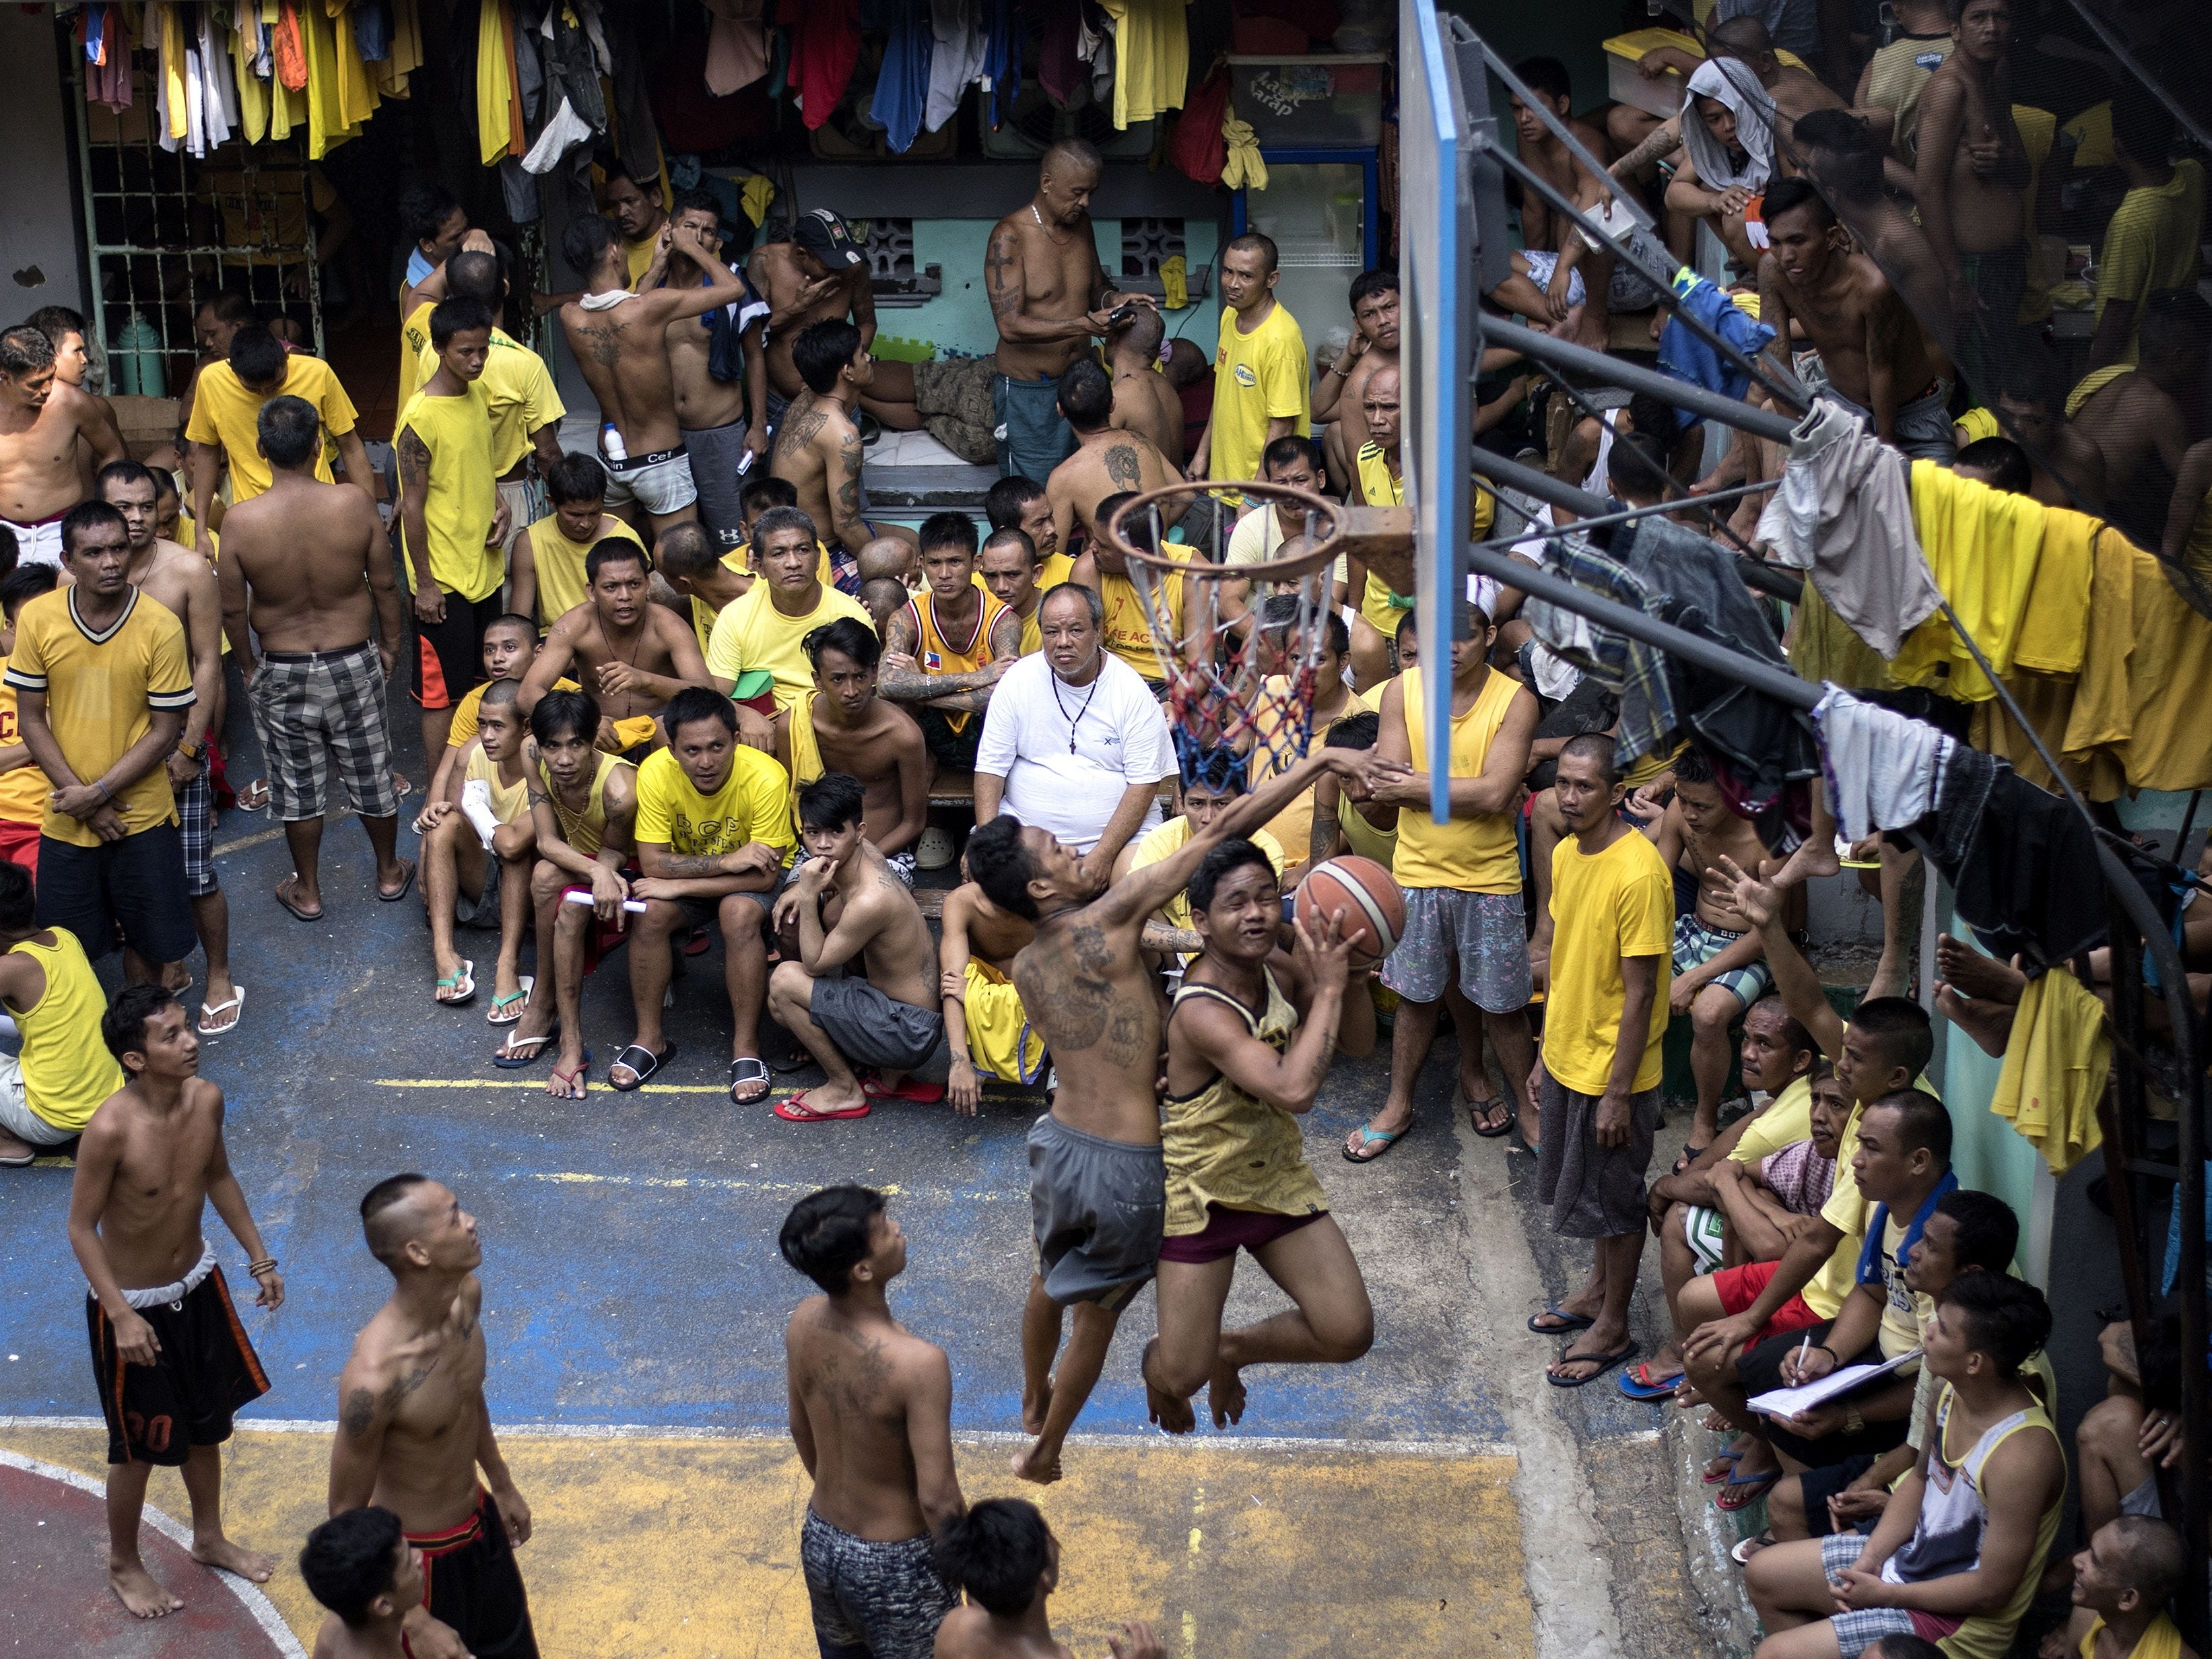 Inmates play basketball in the Quezon City jail in suburban Manila on Tuesday, Sept. 25, 2018.